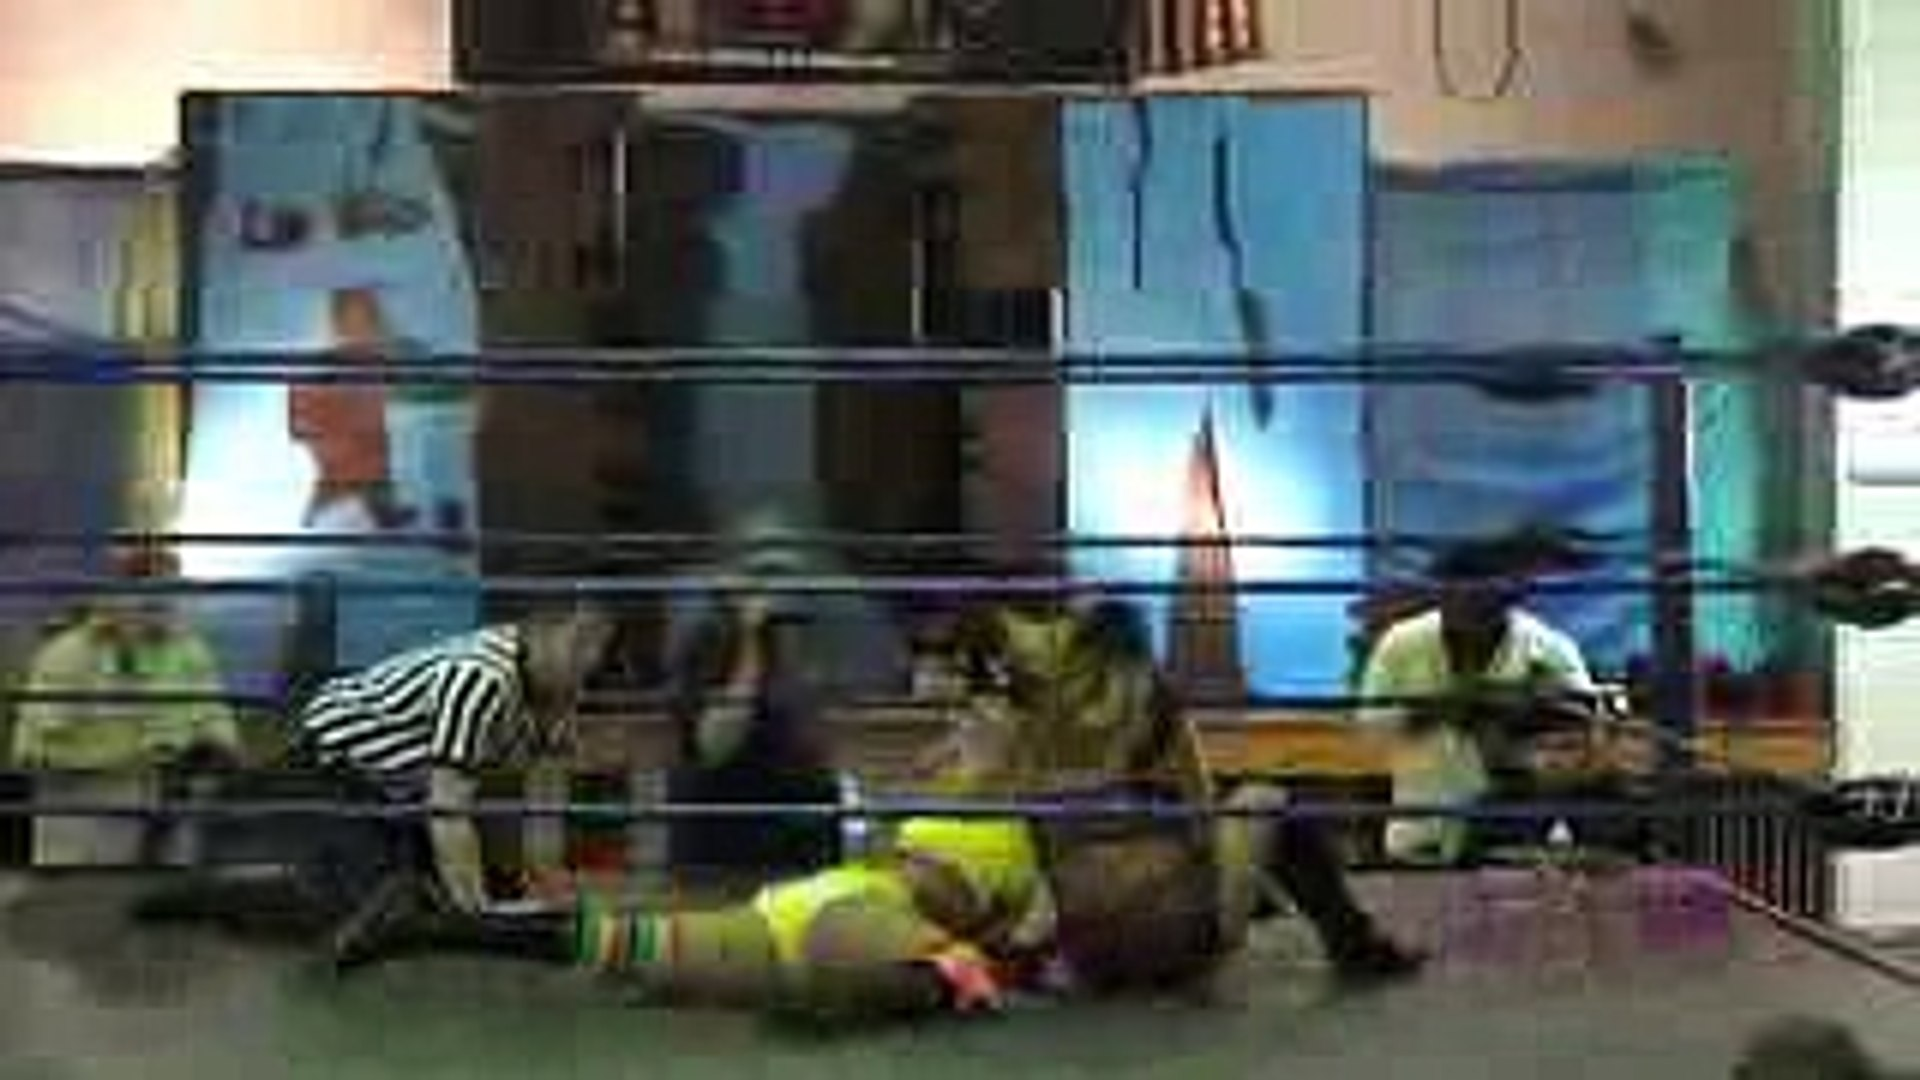 Jenny Rose VS. Mary Elizabeth Monroe - Absolute Intense Wrestling